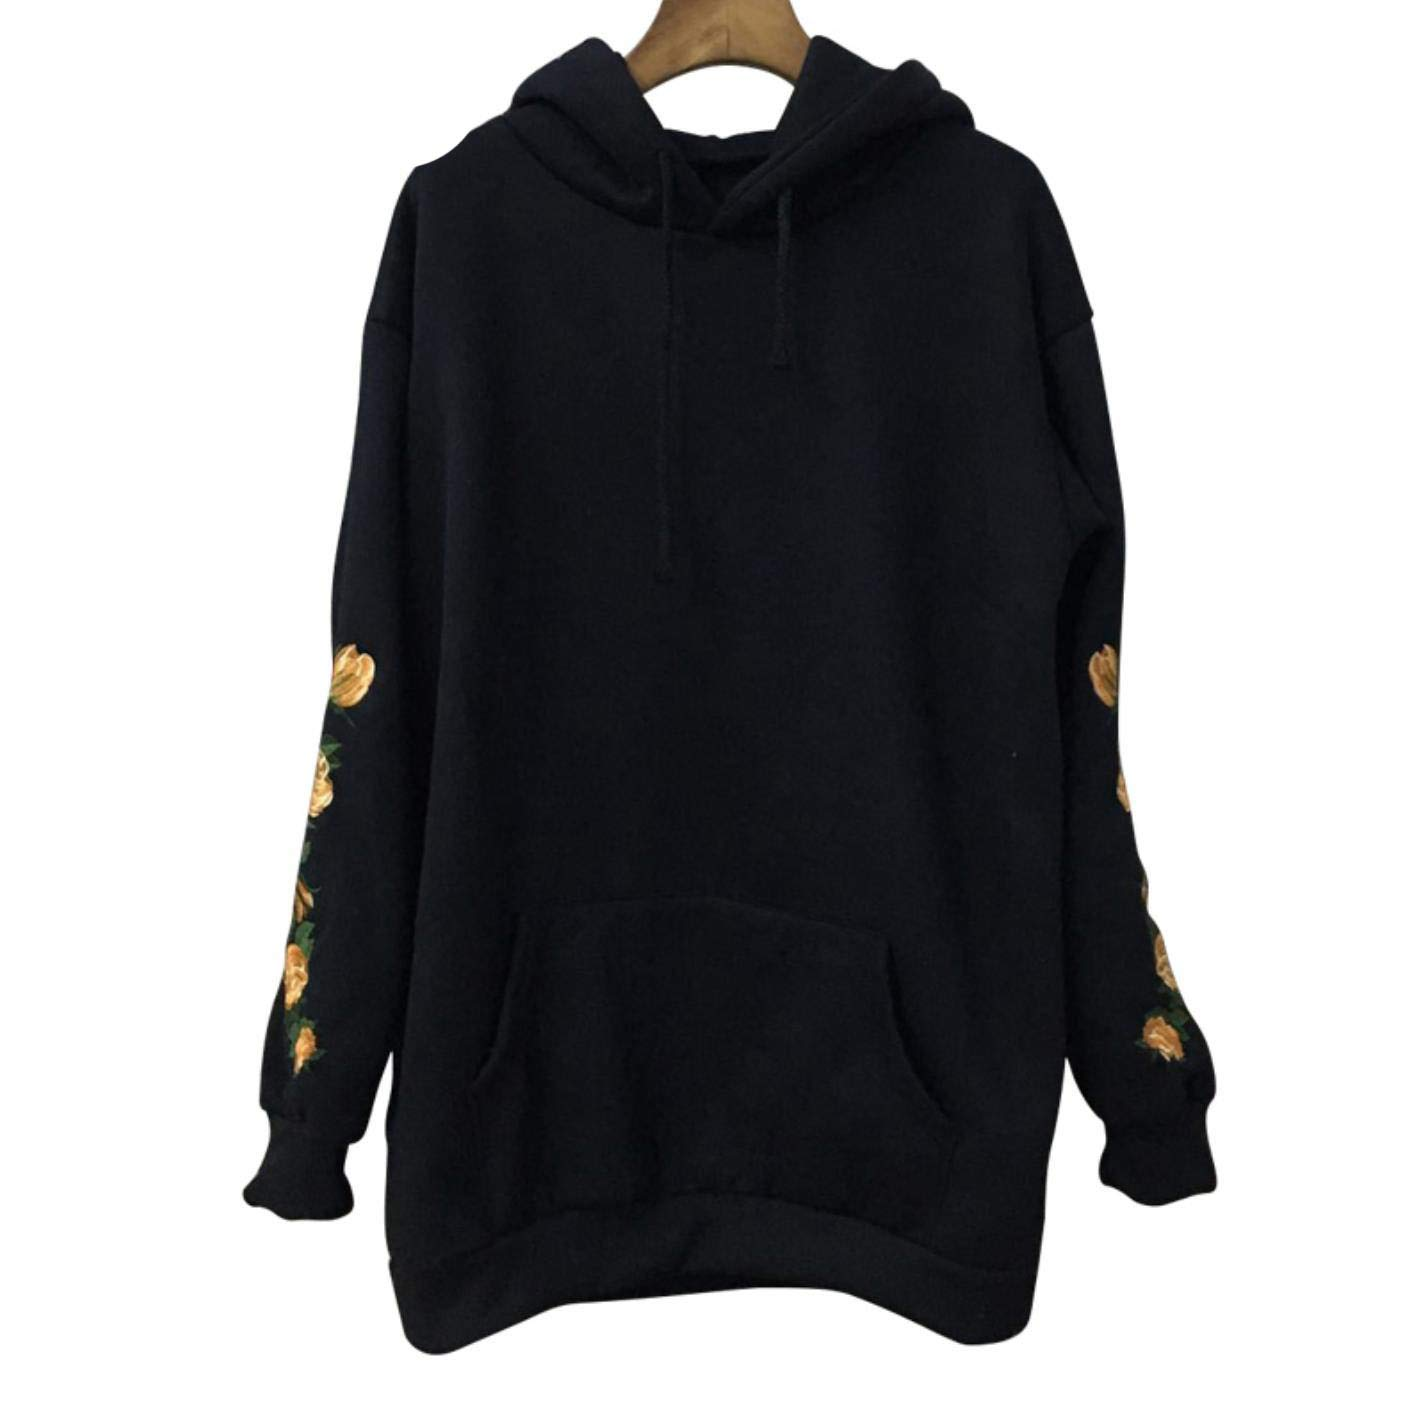 dNepyoDJ Women Embroider Sweatshirt Flower Long Sleeve Big Pocket Fleece Hoodies at Amazon Womens Clothing store: